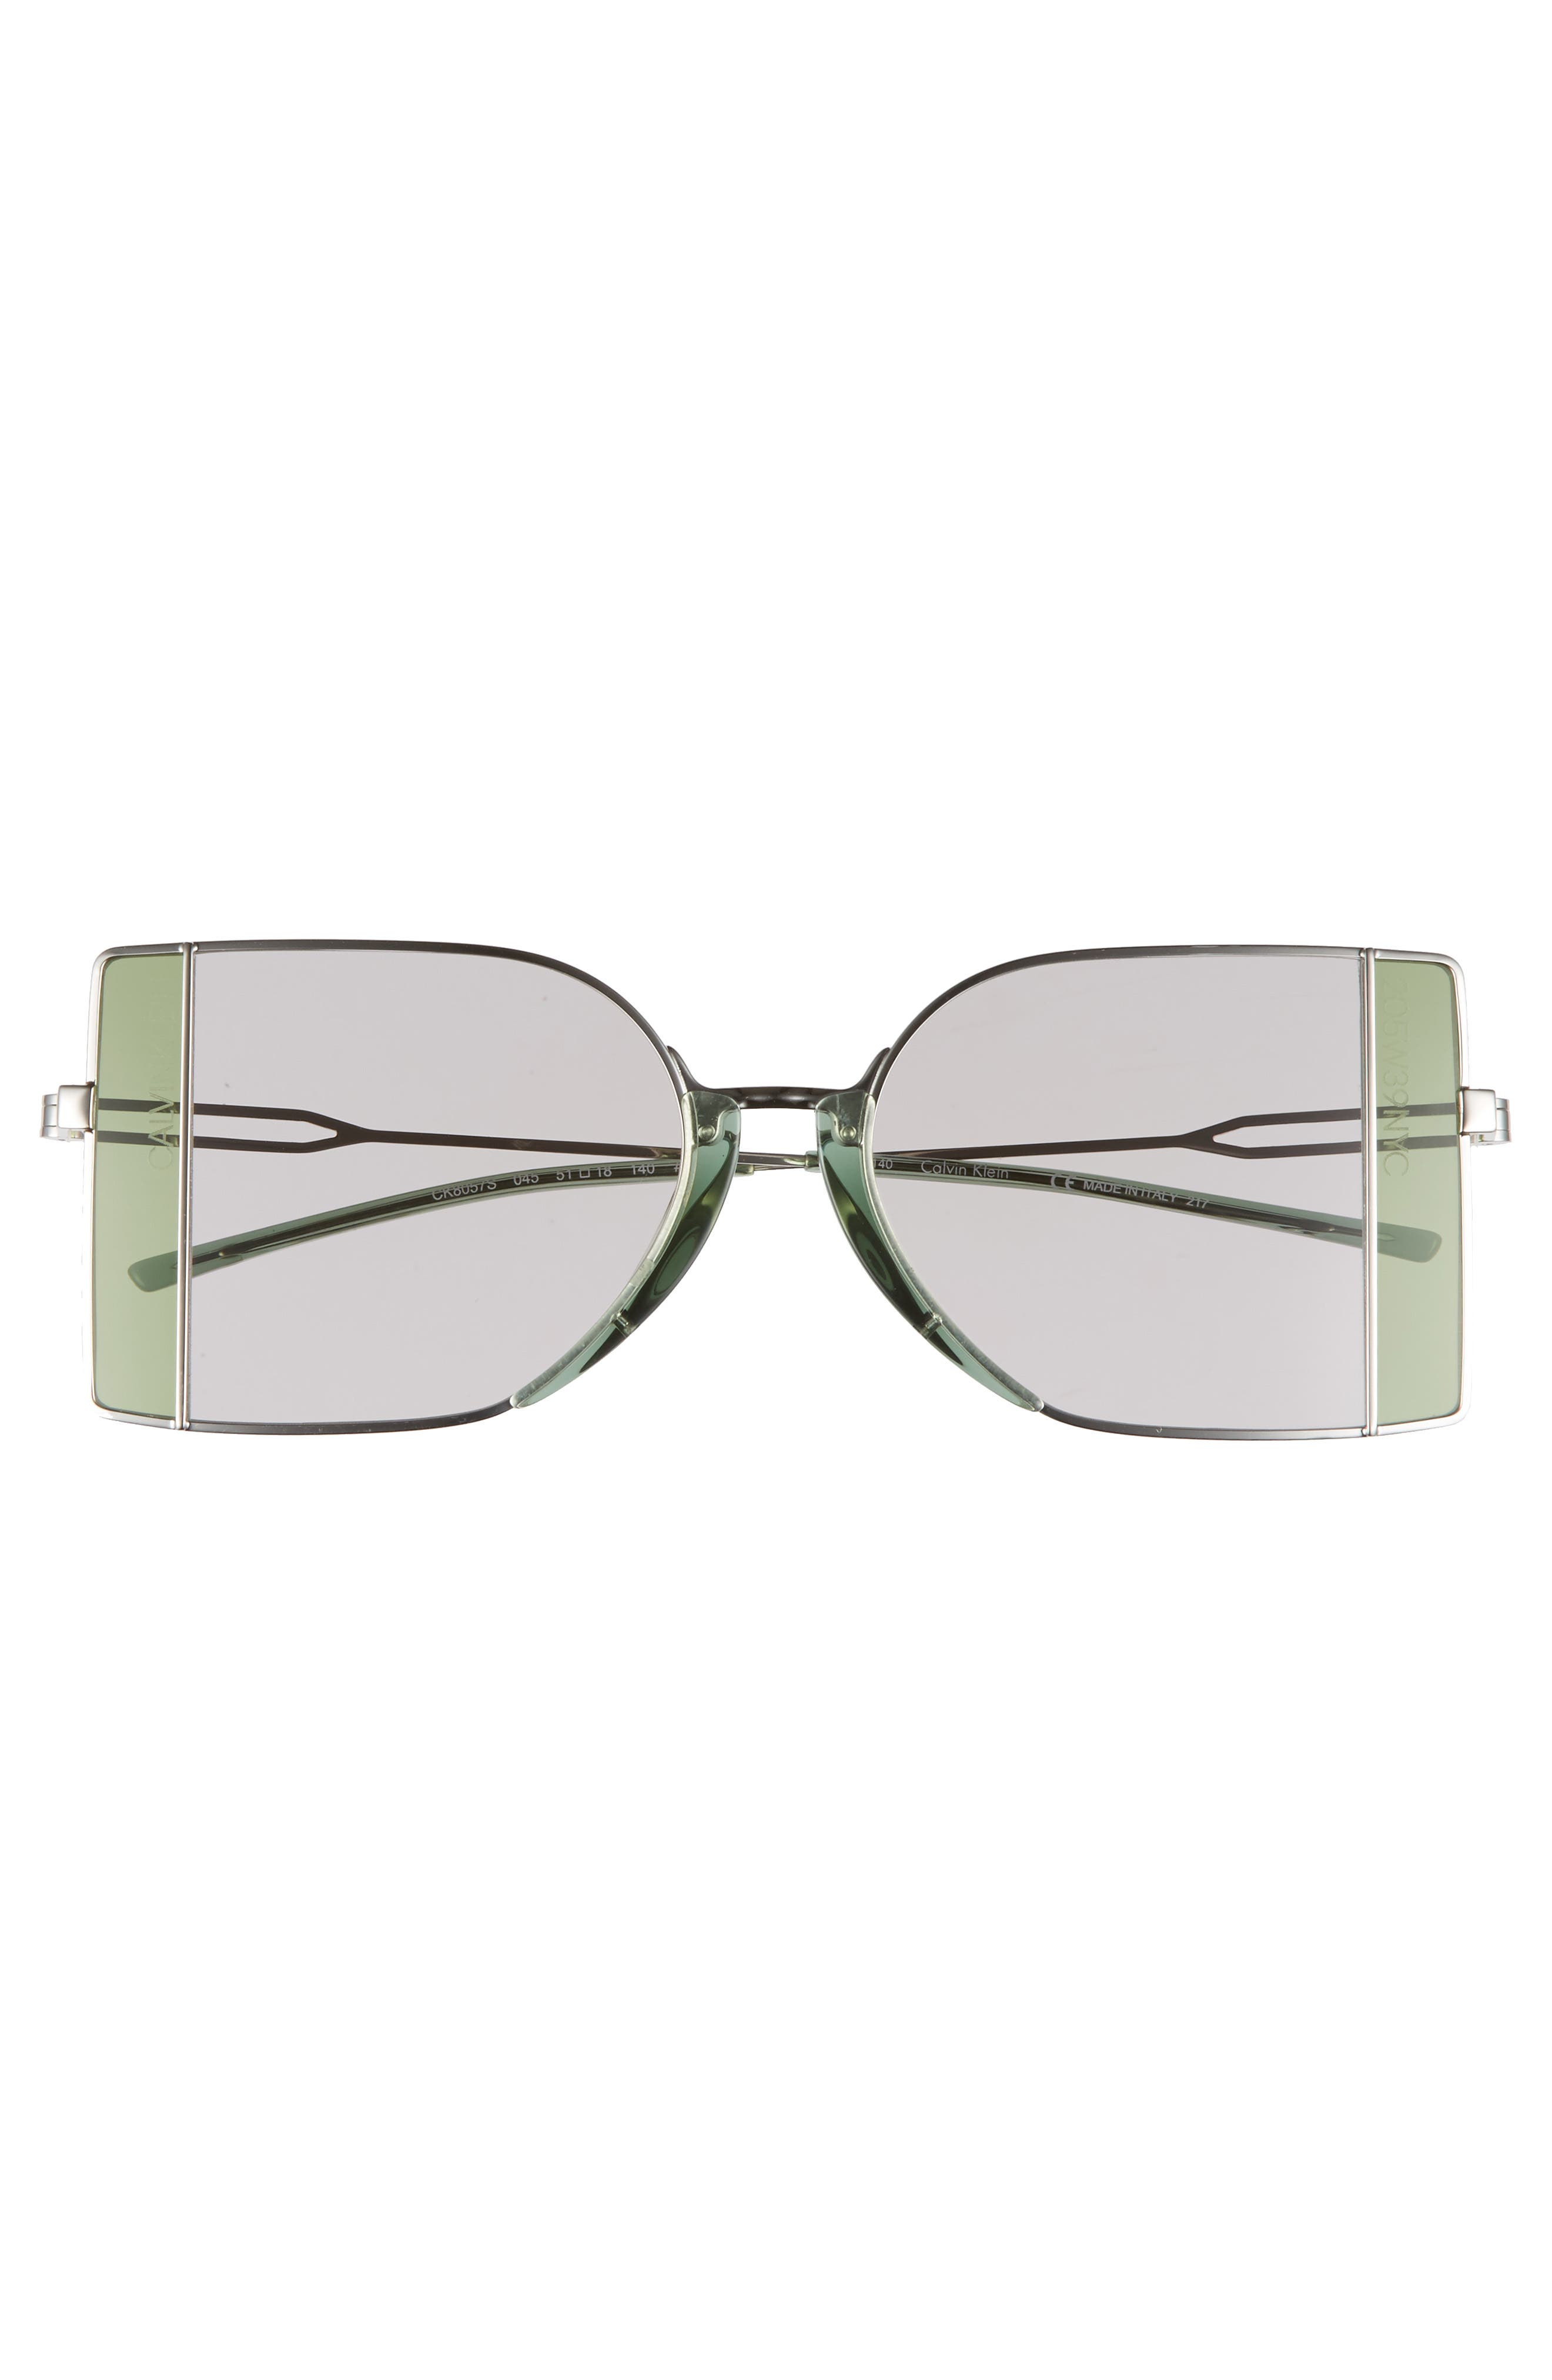 51mm Butterfly Sunglasses,                             Alternate thumbnail 3, color,                             041